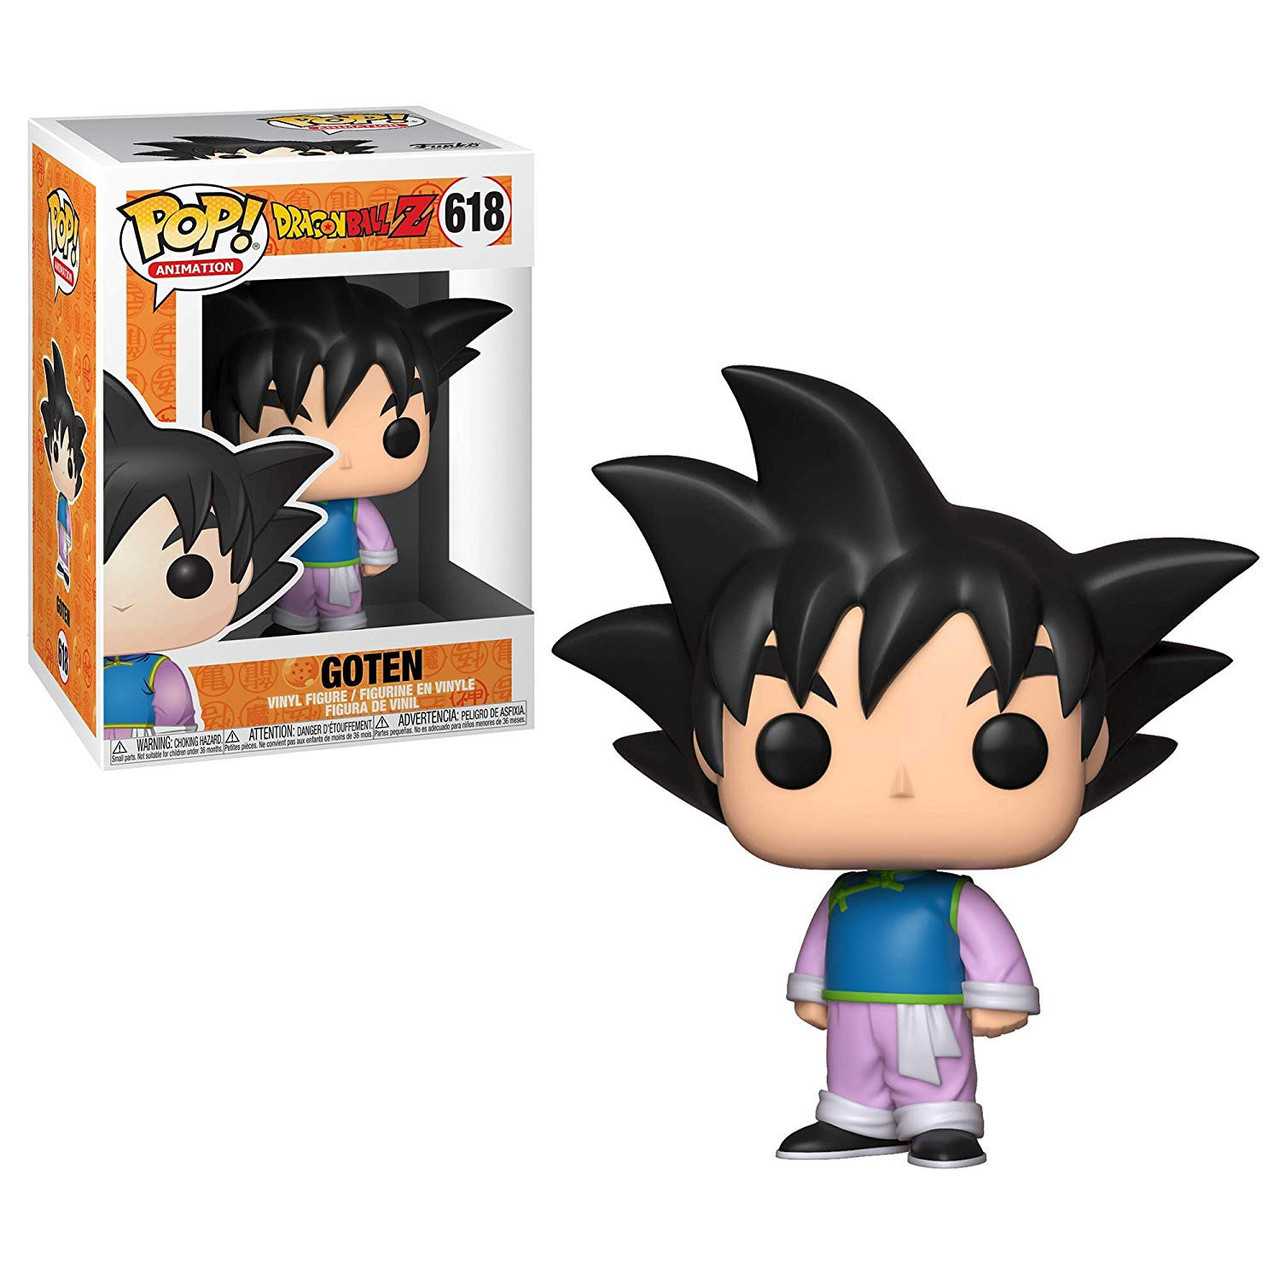 Dragon Ball Z Funko POP! Animation Goten Vinyl Figure